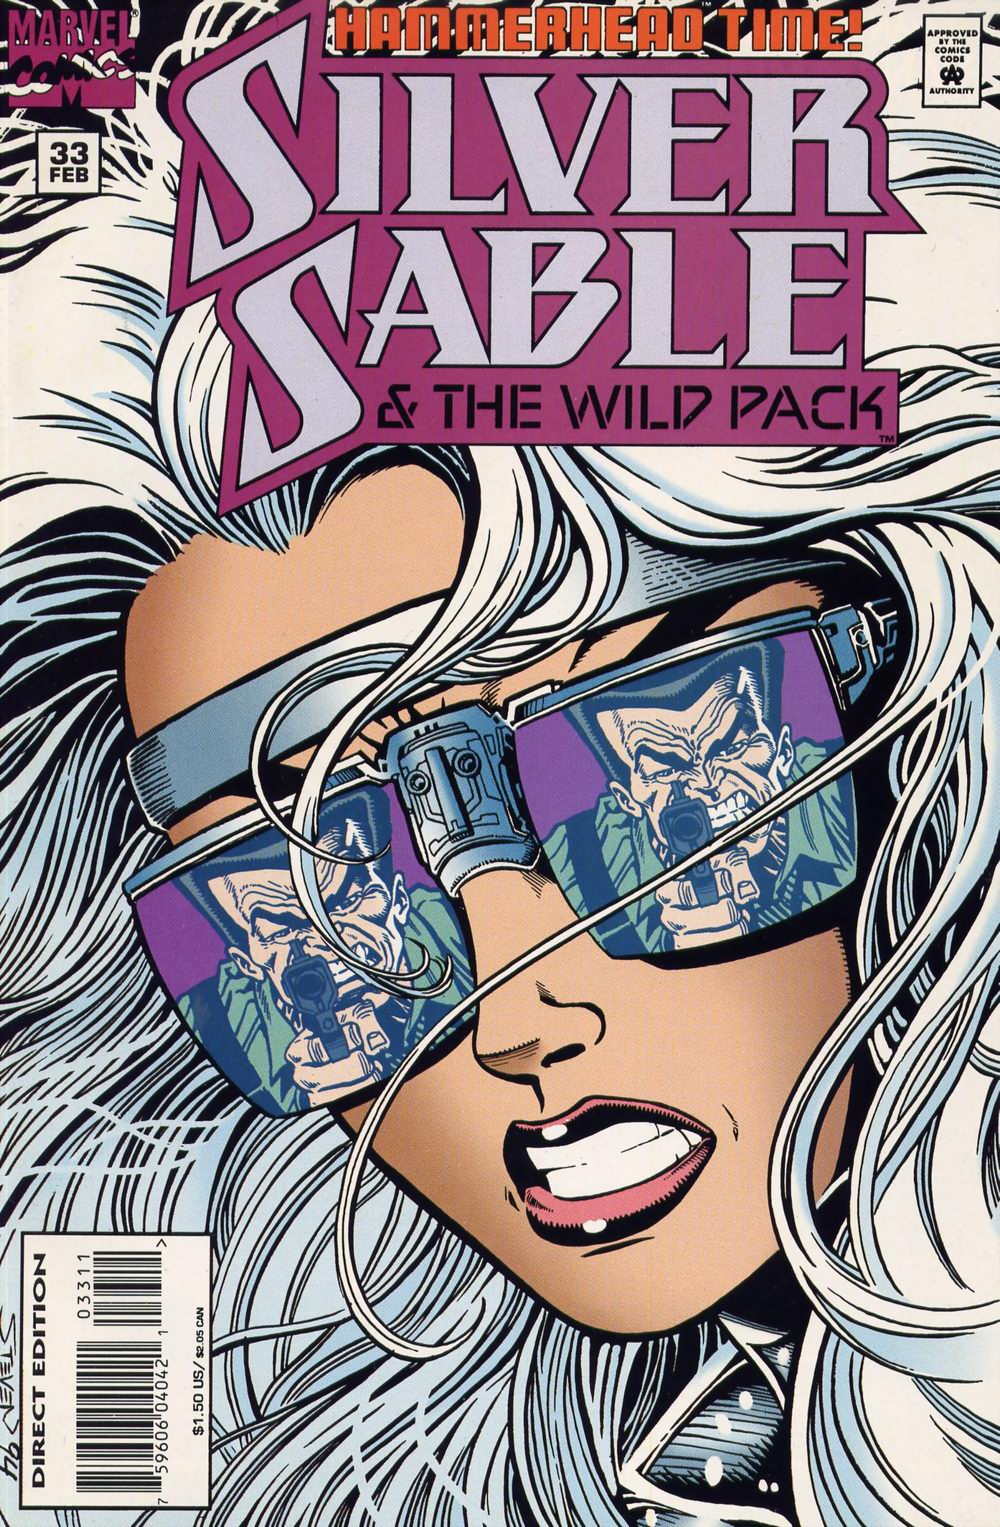 Read online Silver Sable and the Wild Pack comic -  Issue #33 - 1